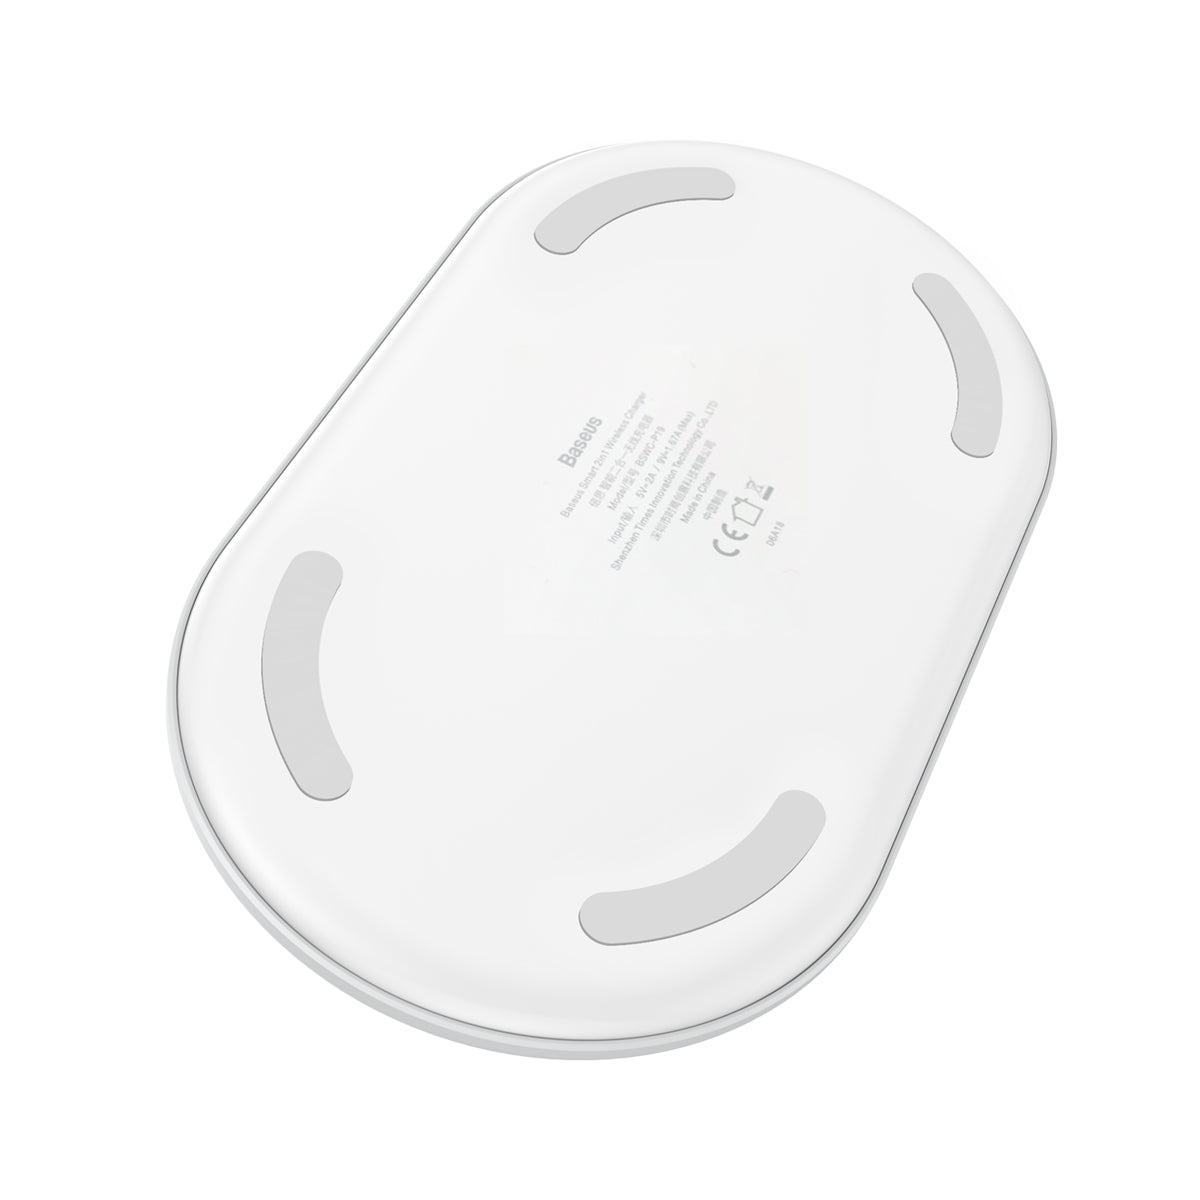 Baseus Smart 2in1 Wireless Charger White